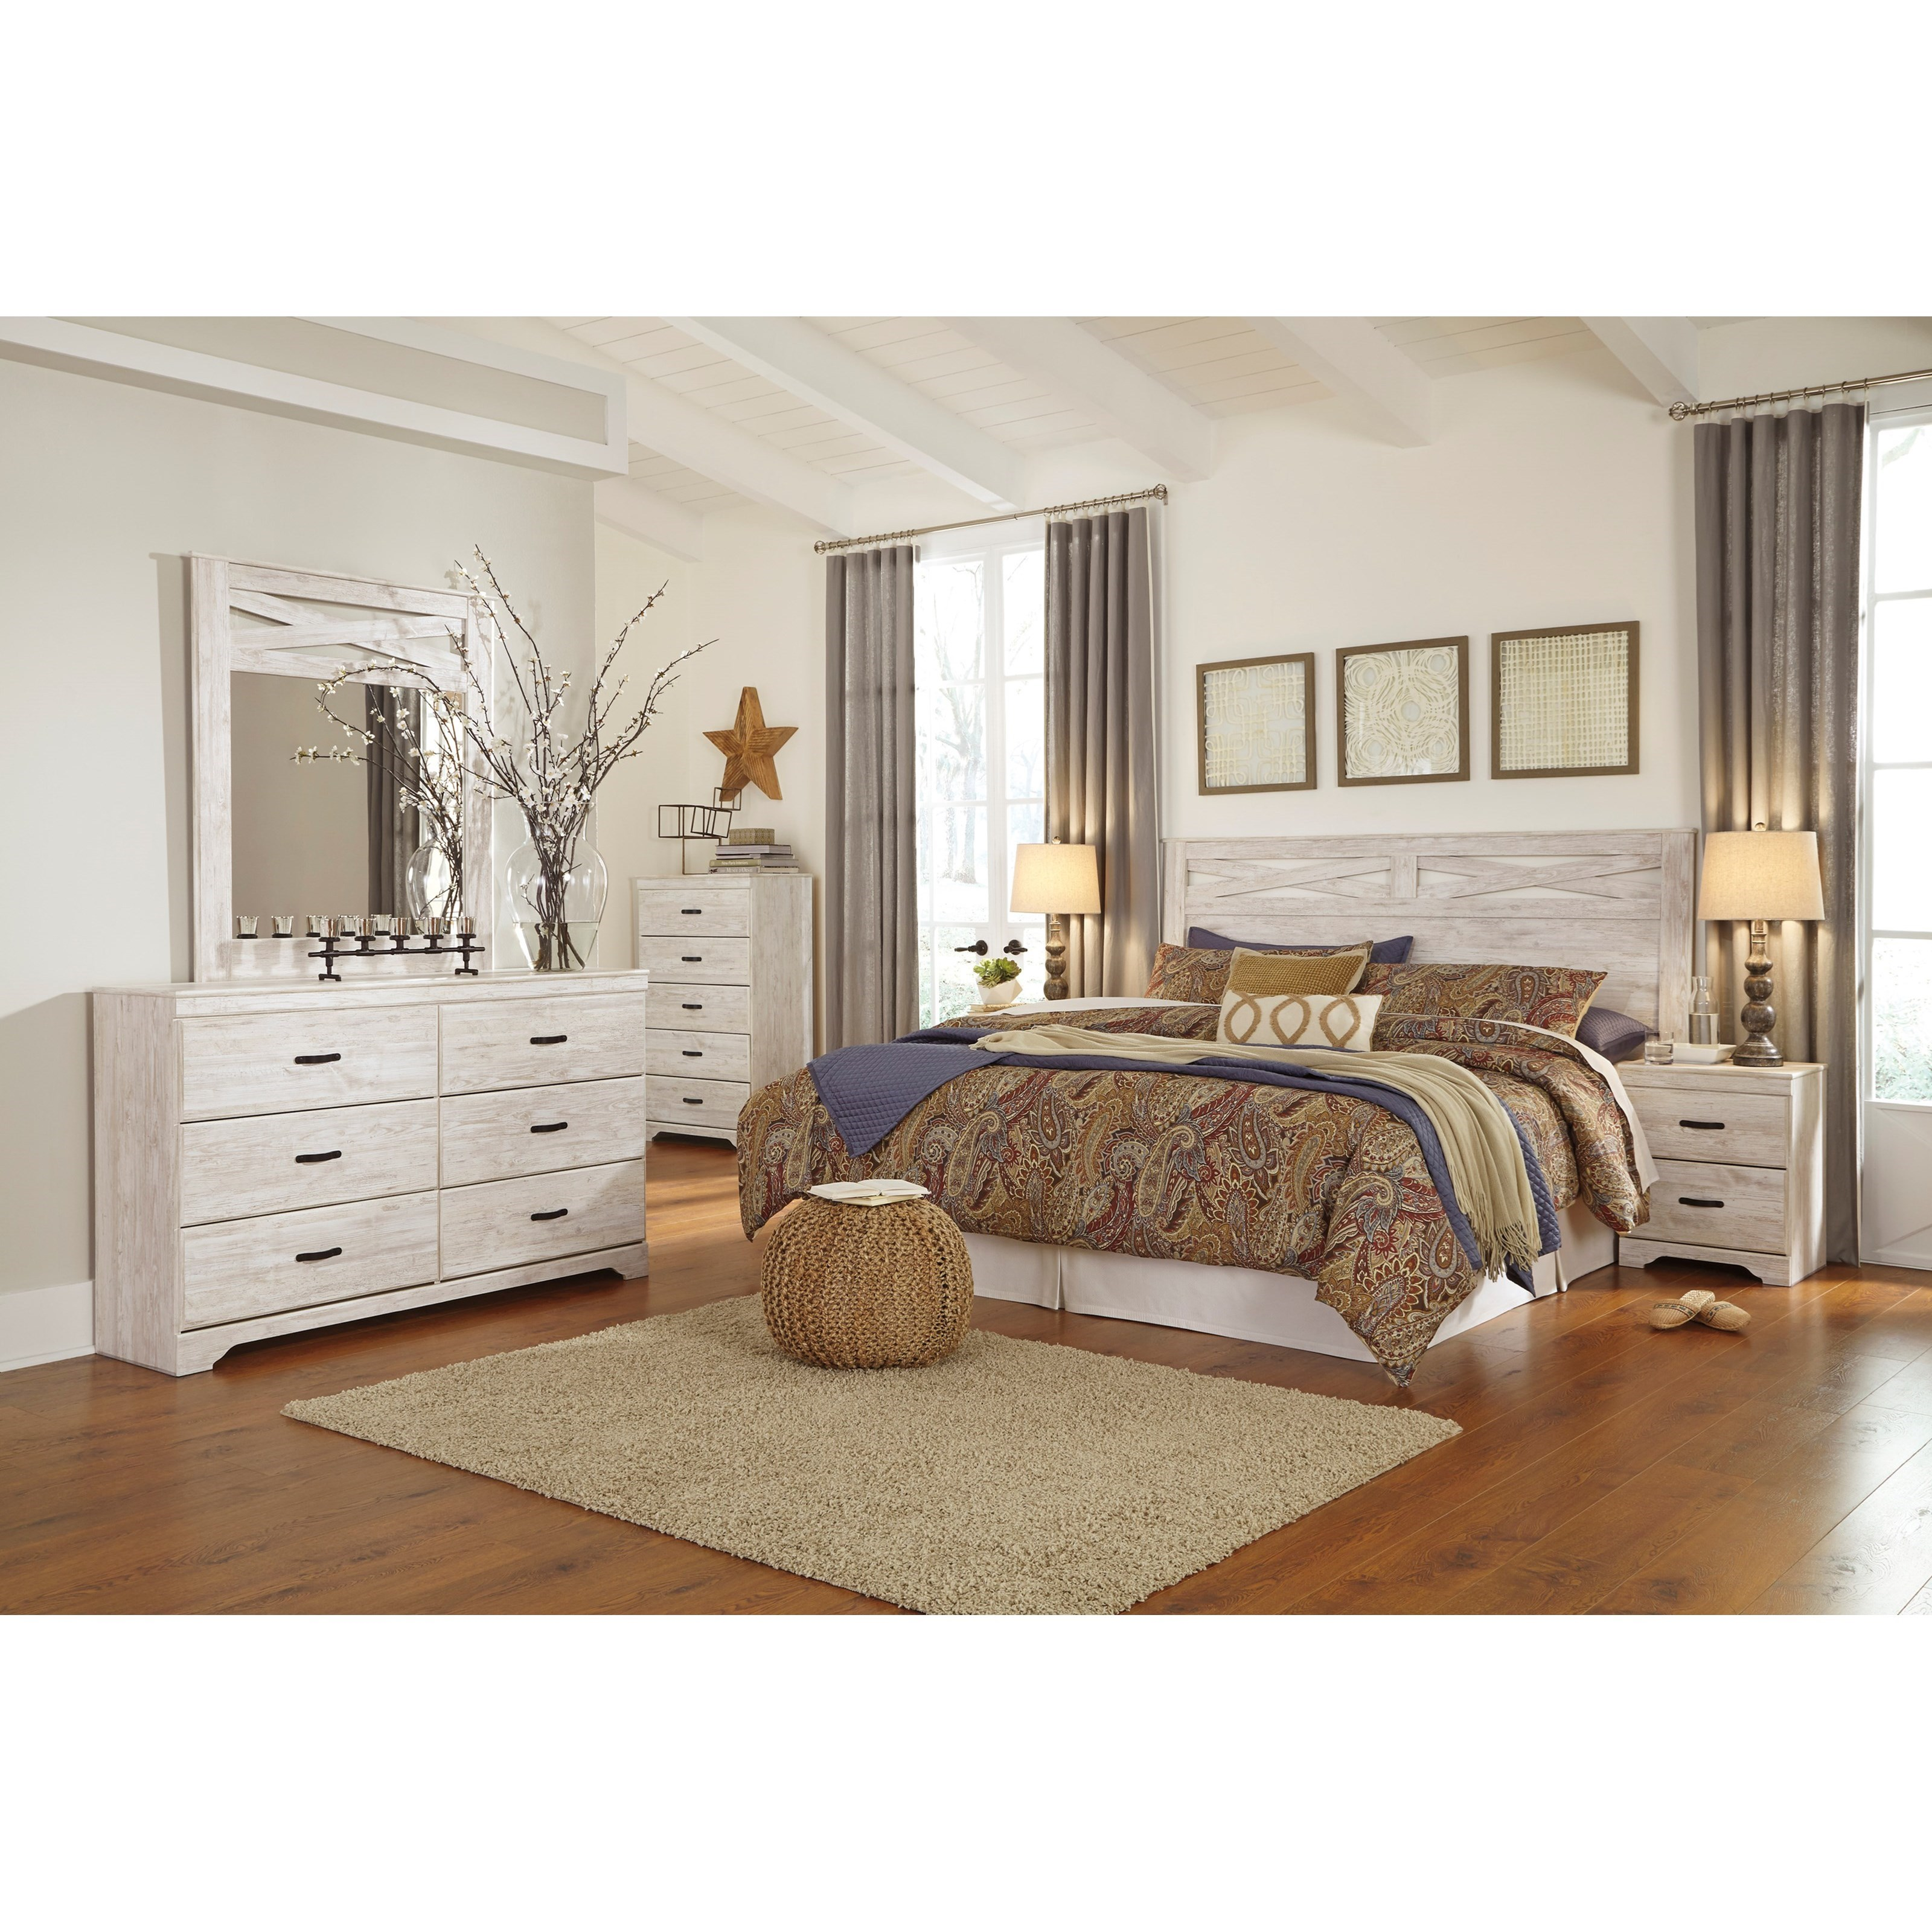 Signature Design By Ashley Briartown King Bedroom Group Value City Furniture Bedroom Groups